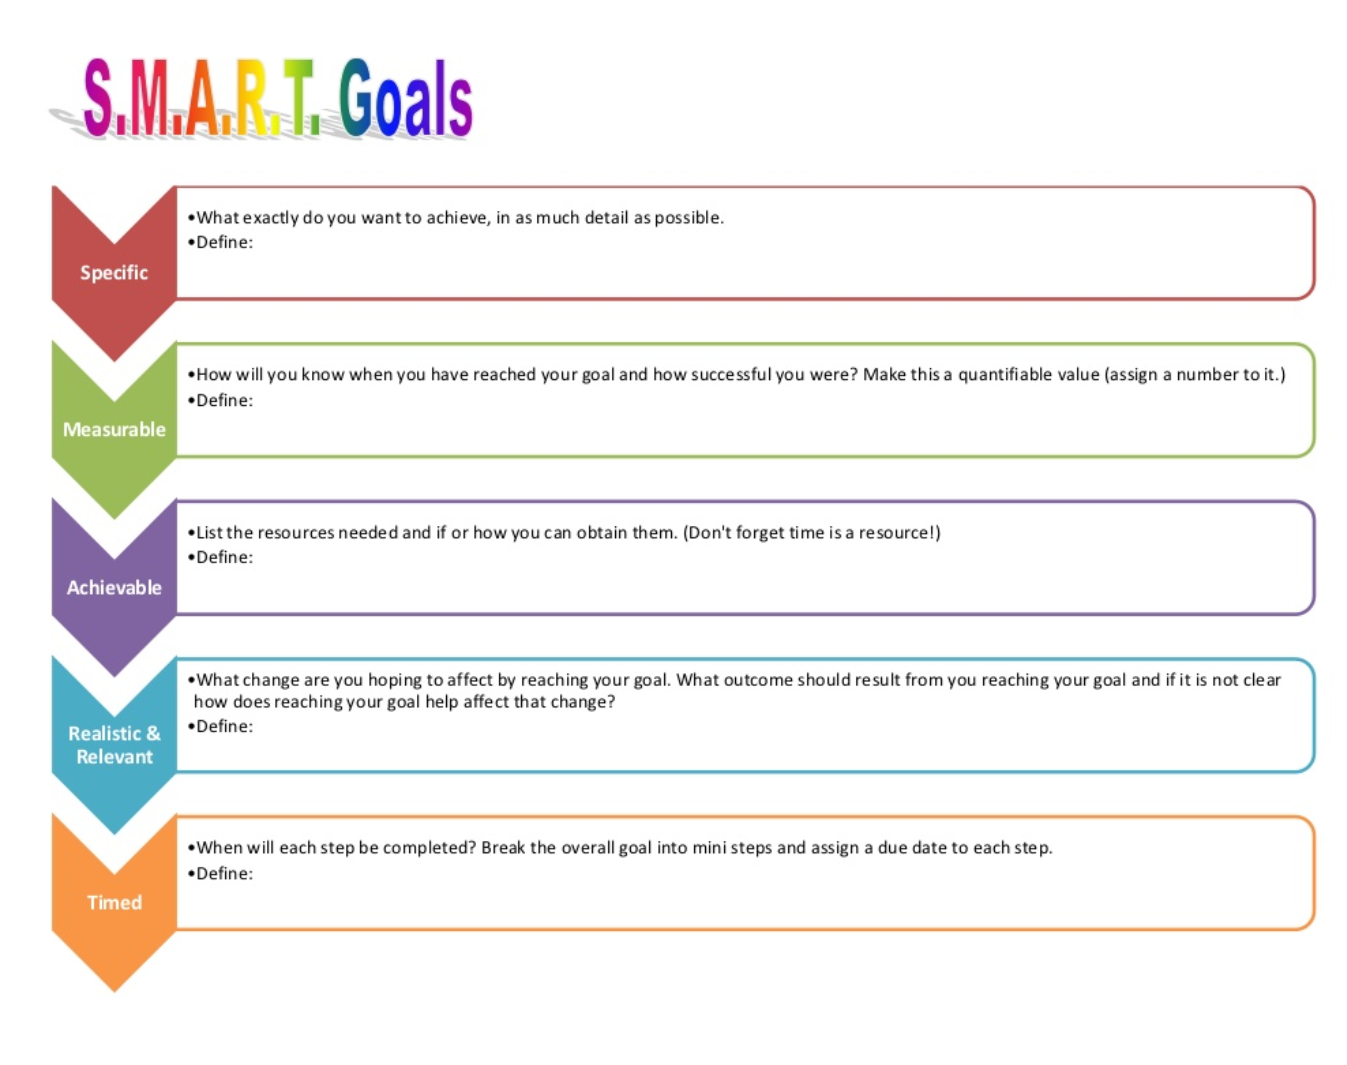 41 S.M.A.R.T Goal Setting Templates & Worksheets ᐅ TemplateLab |Employee Goal Setting Template